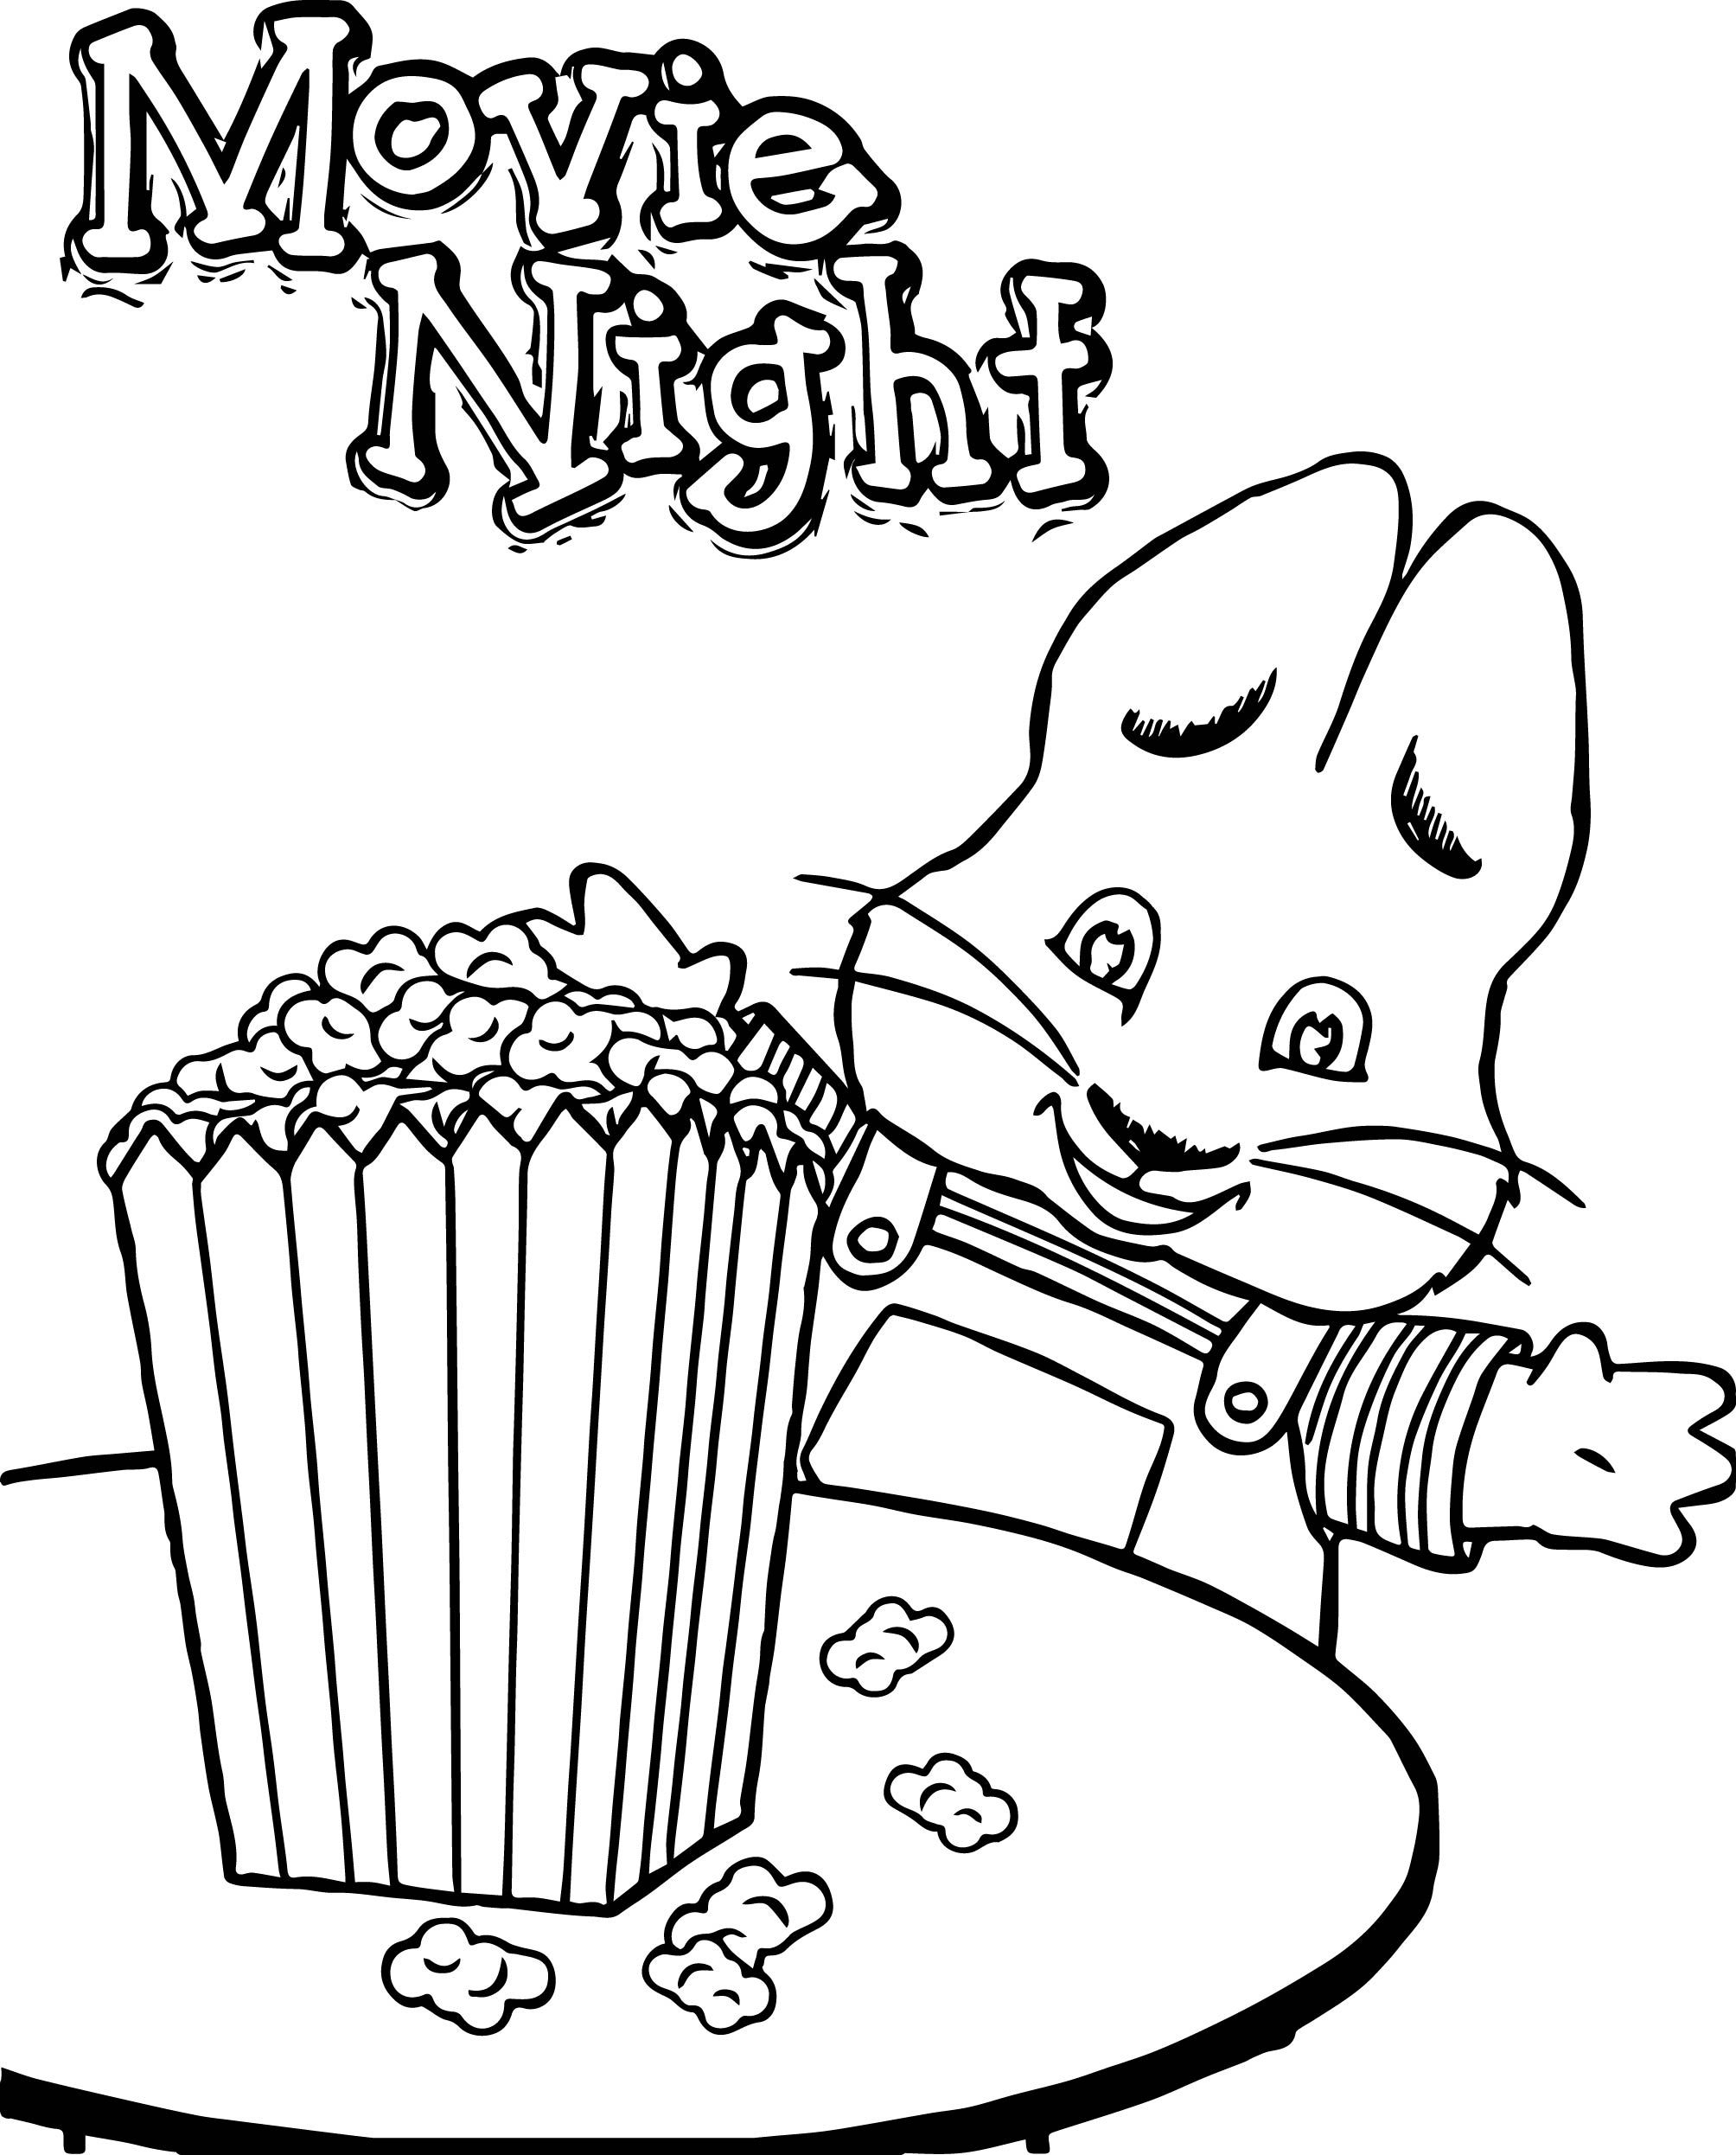 Cool Max Ruby Movie Night Eat Popcorn Max And Ruby Coloring Page